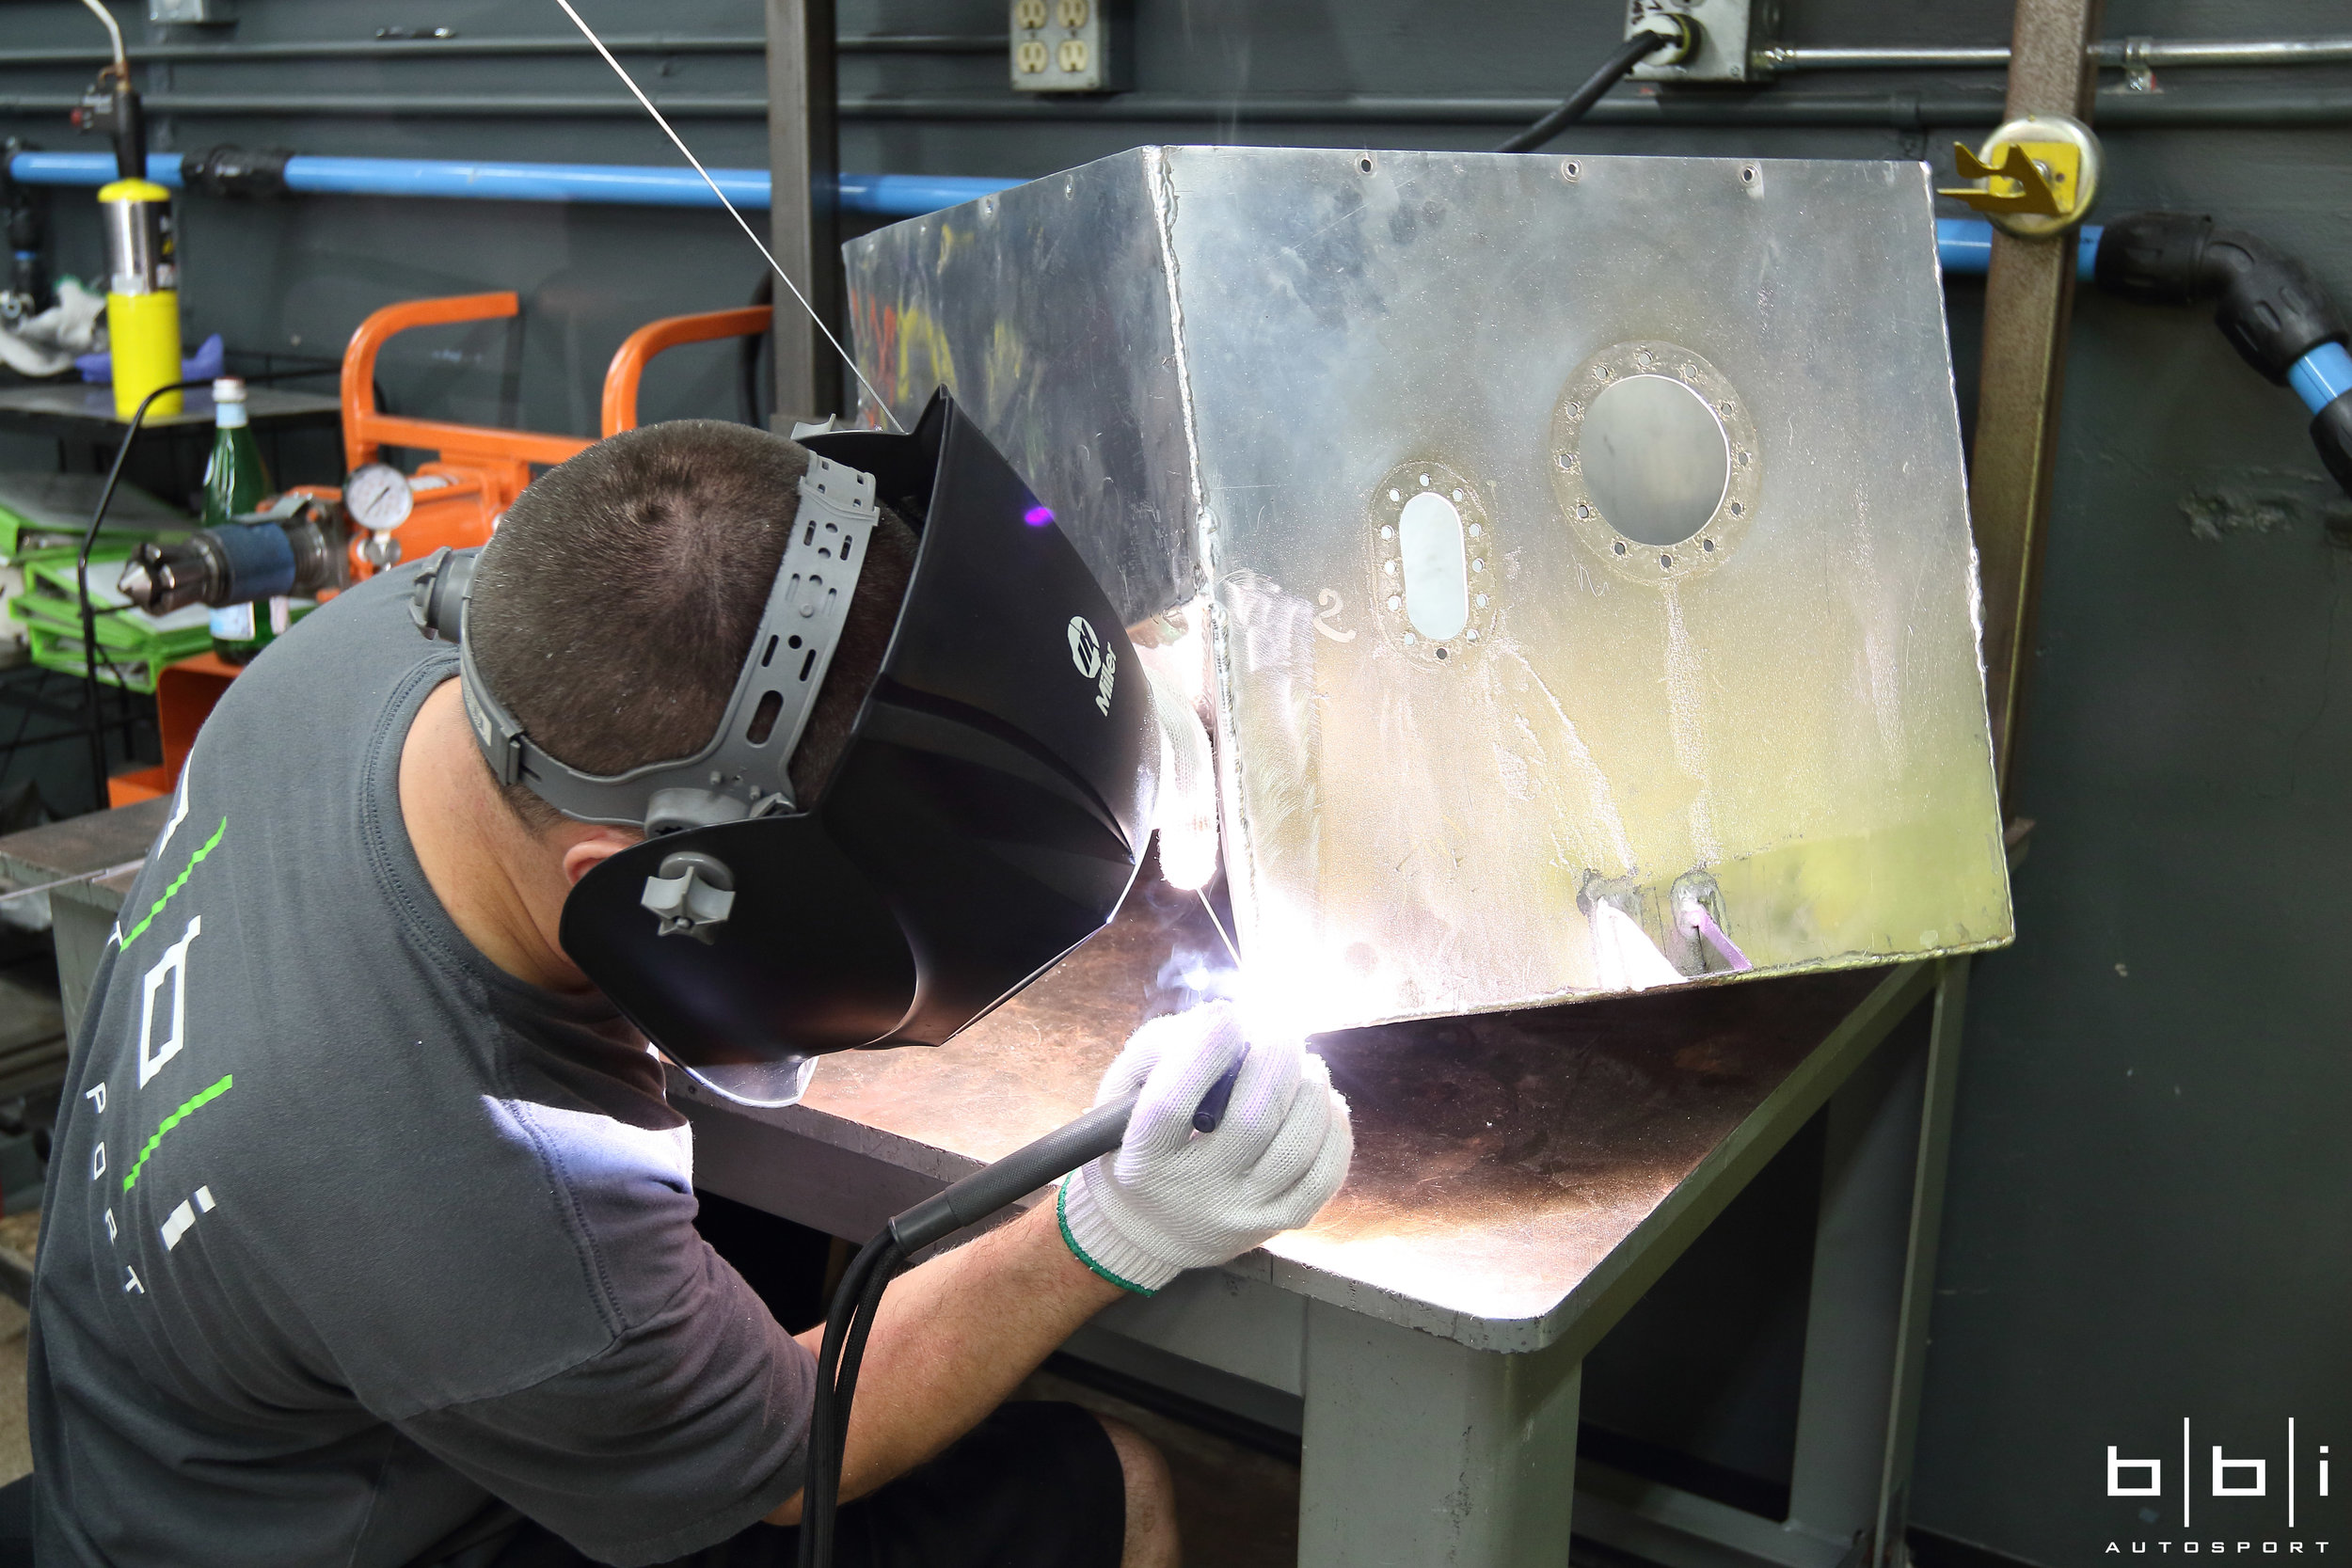 The fuel cell's aluminum container was damaged and need to be welded before inserting the new foam baffling.